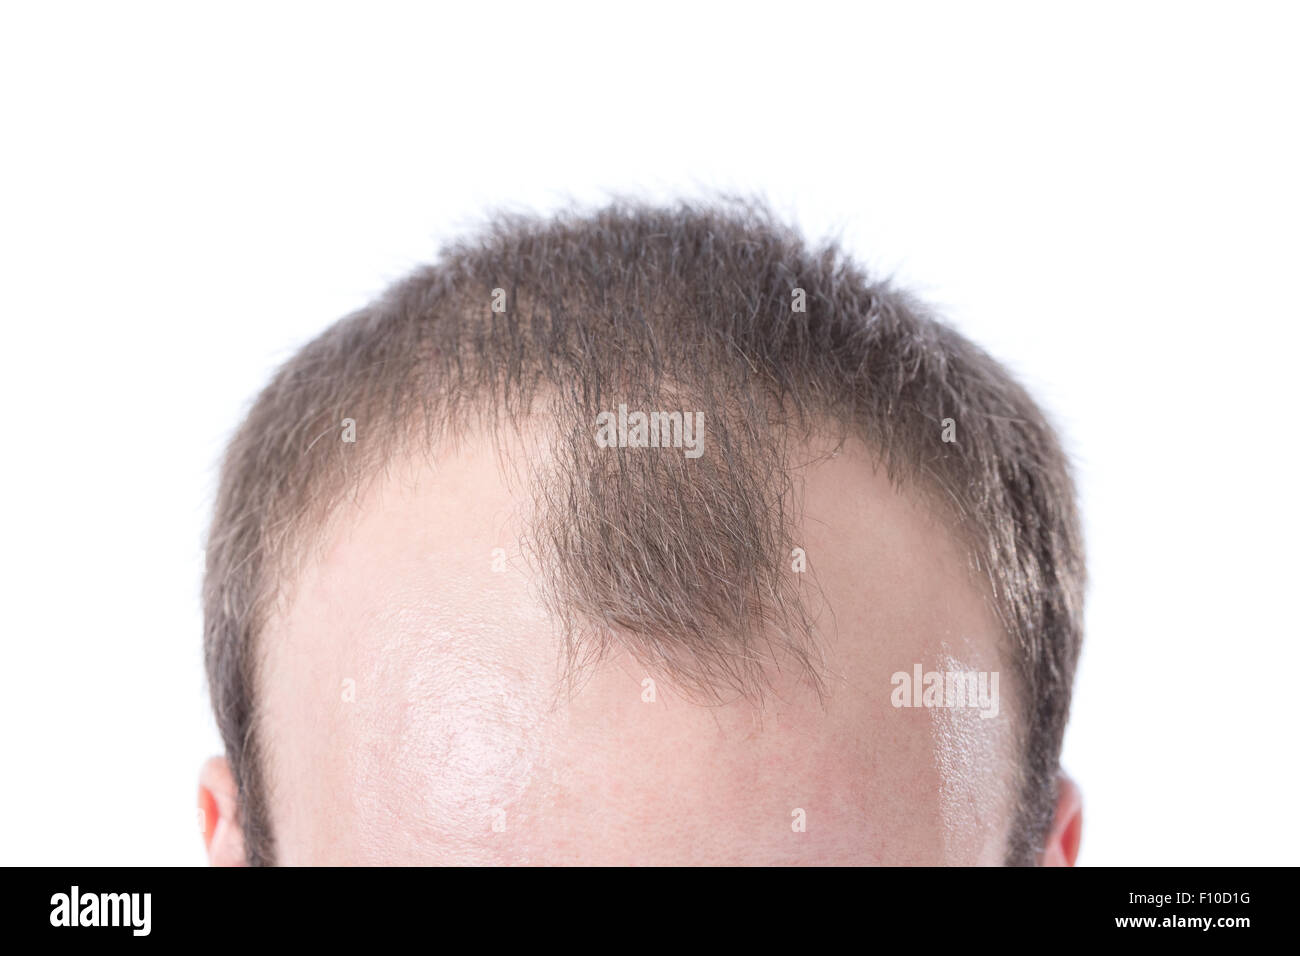 A White Male With Brown Hairu0027s Receding Hairline On A White Background.    Stock Image